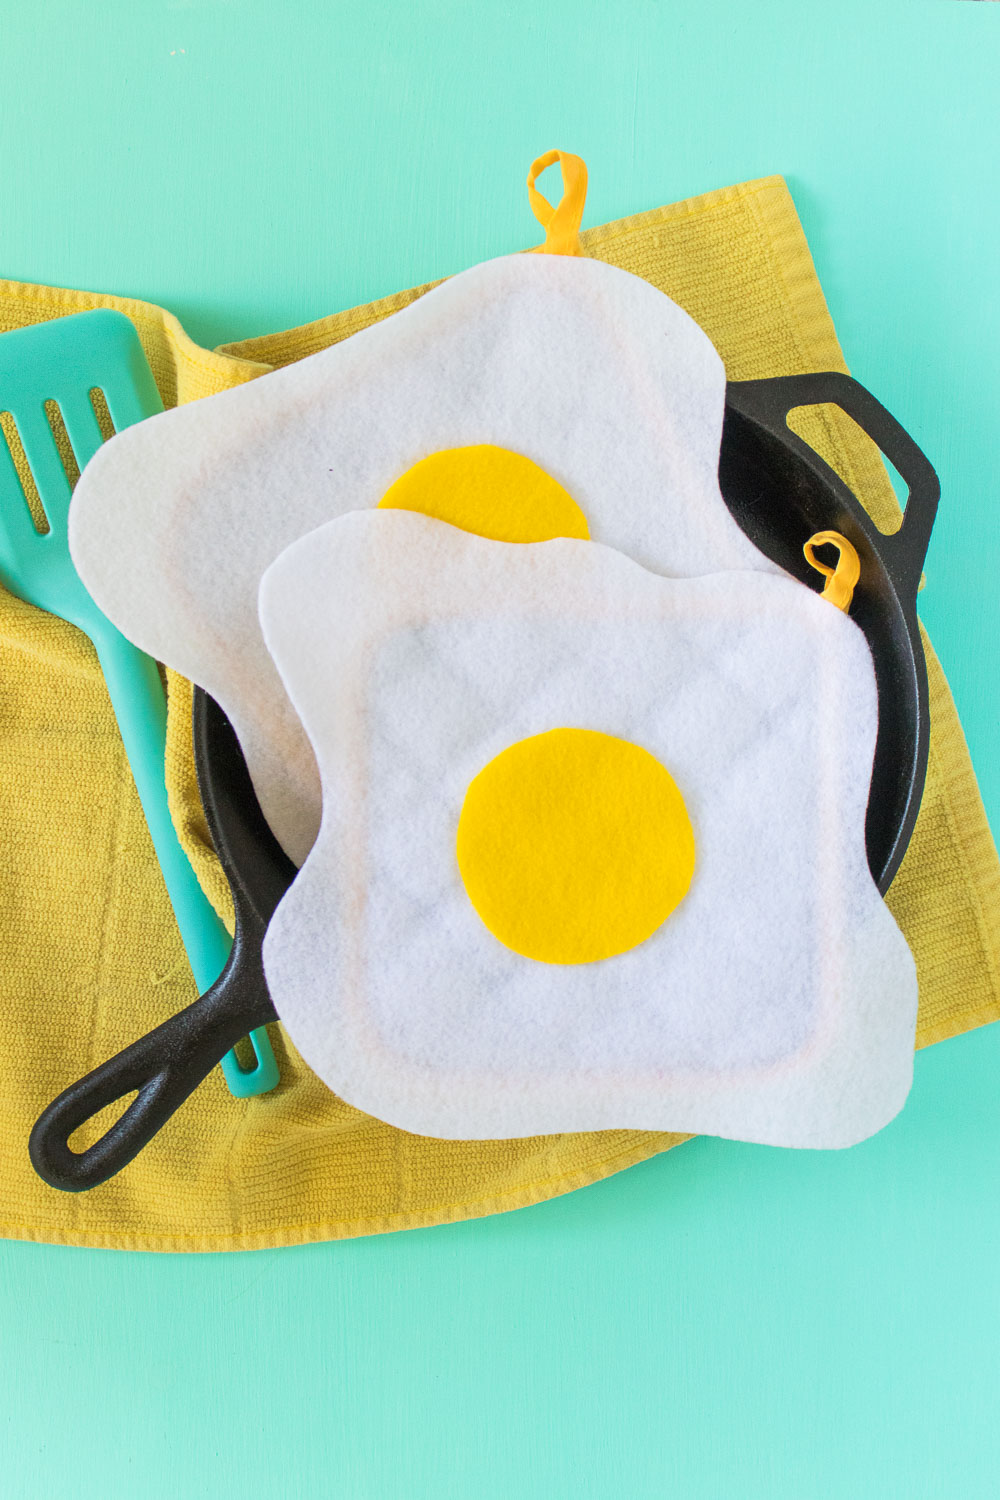 DIY No-Sew Fried Egg Oven Mitts [+ a Video!] | Club Crafted